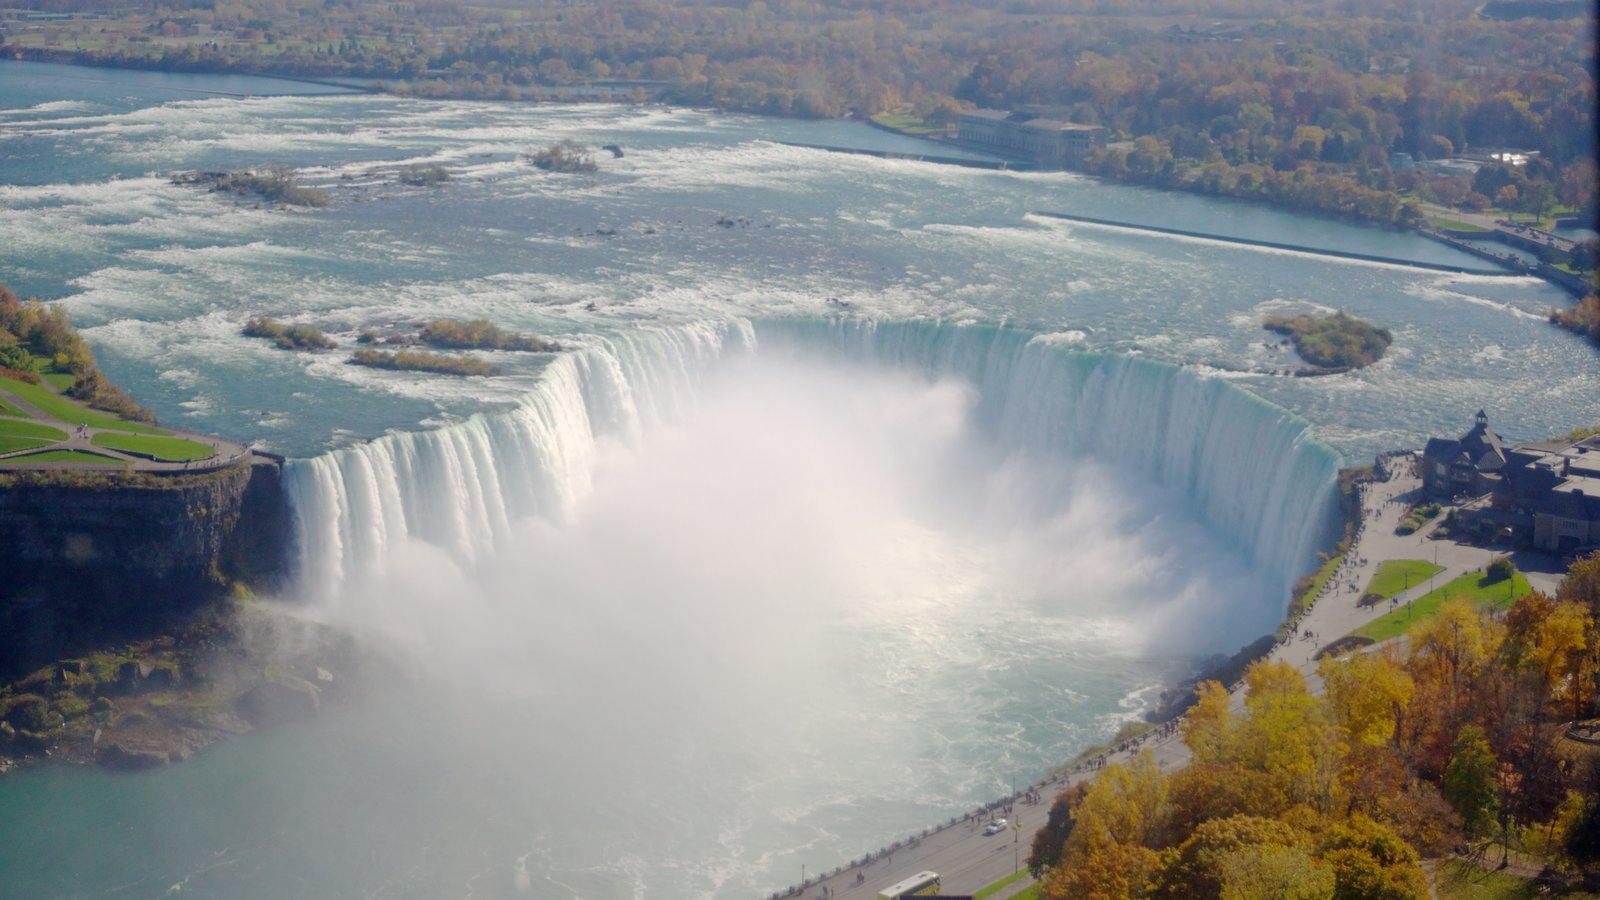 Niagara Falls which includes landscape views and a waterfall